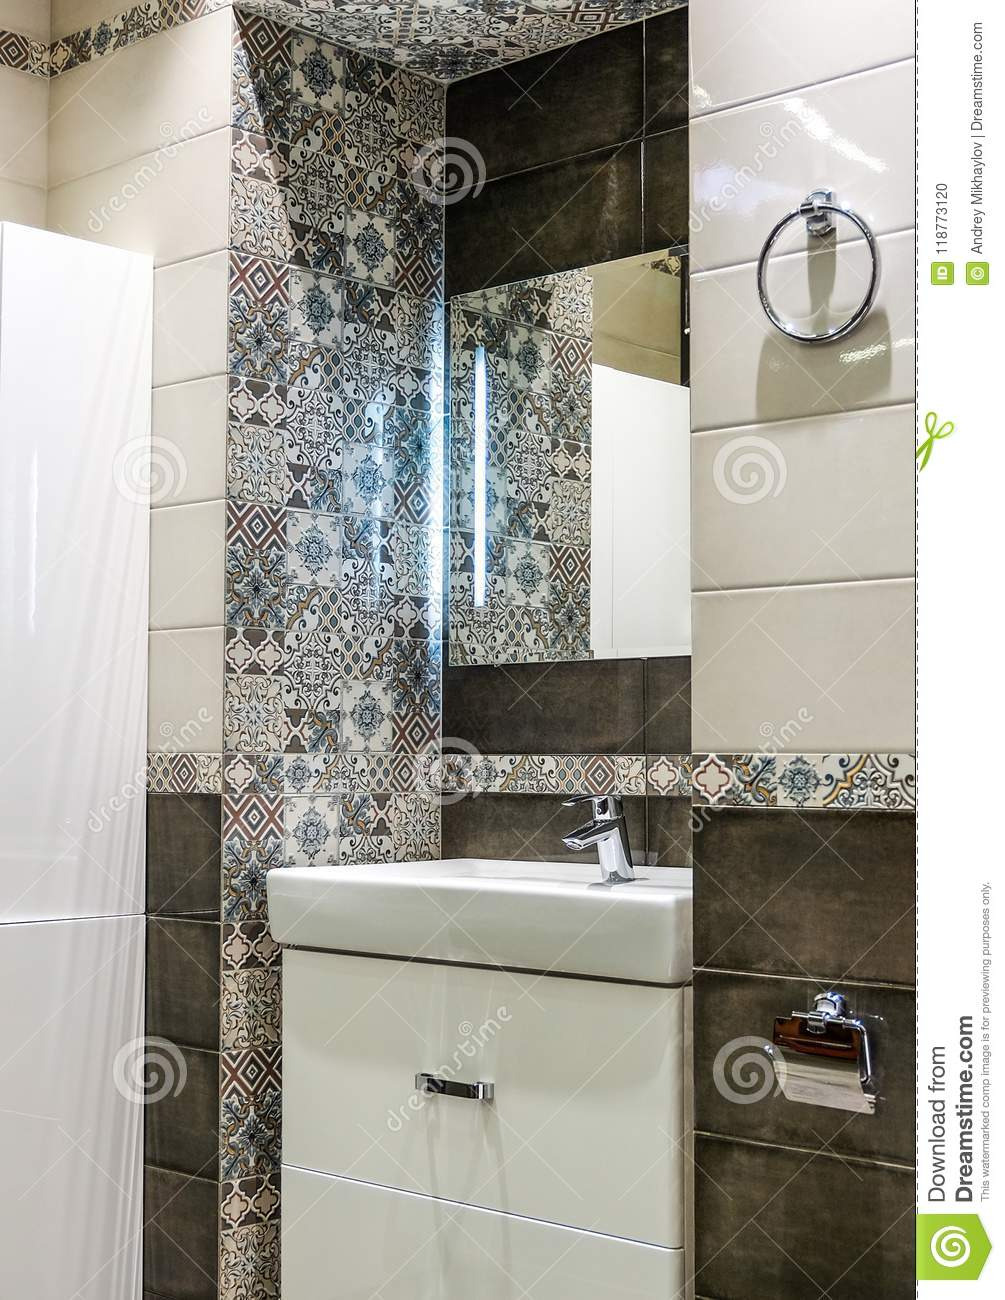 Decor Tiles for Bathroom Wall Inspirational Wall Decoration with Ceramic Tiles In the Bathroom Stock